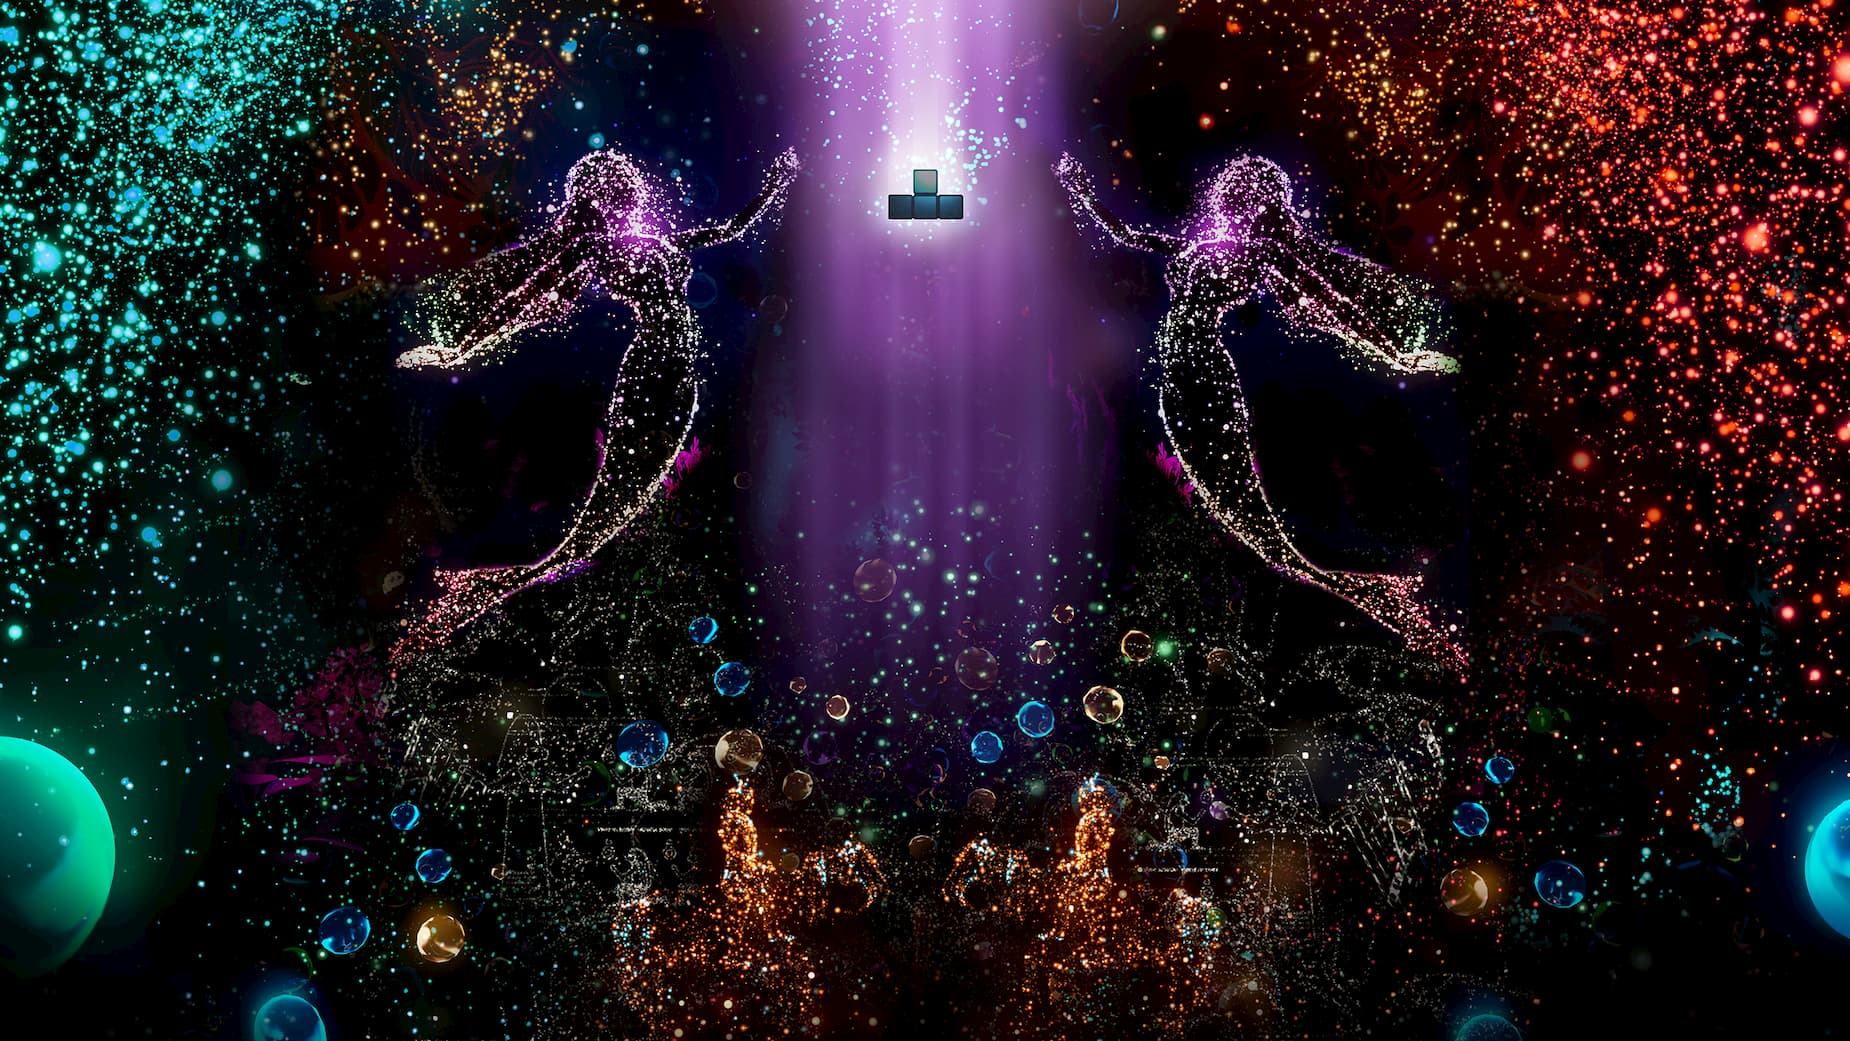 Epic Game Store exclusive Tetris Effect requires Steam VR for its VR mode screenshot